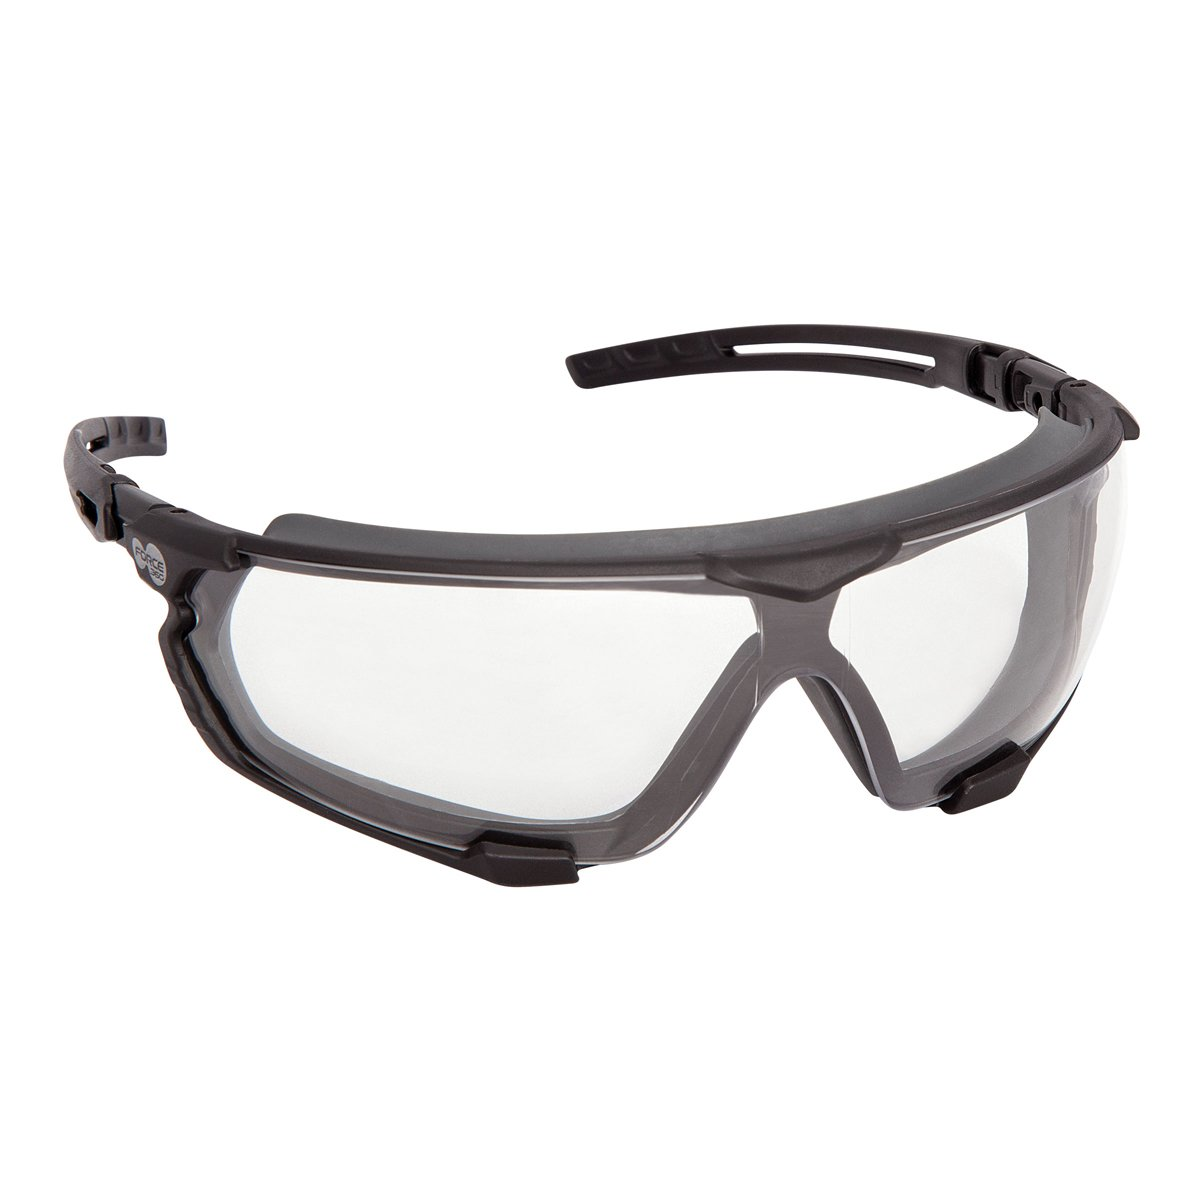 Force360 Arma SI Clear Lens Safety Spectacle with Gasket